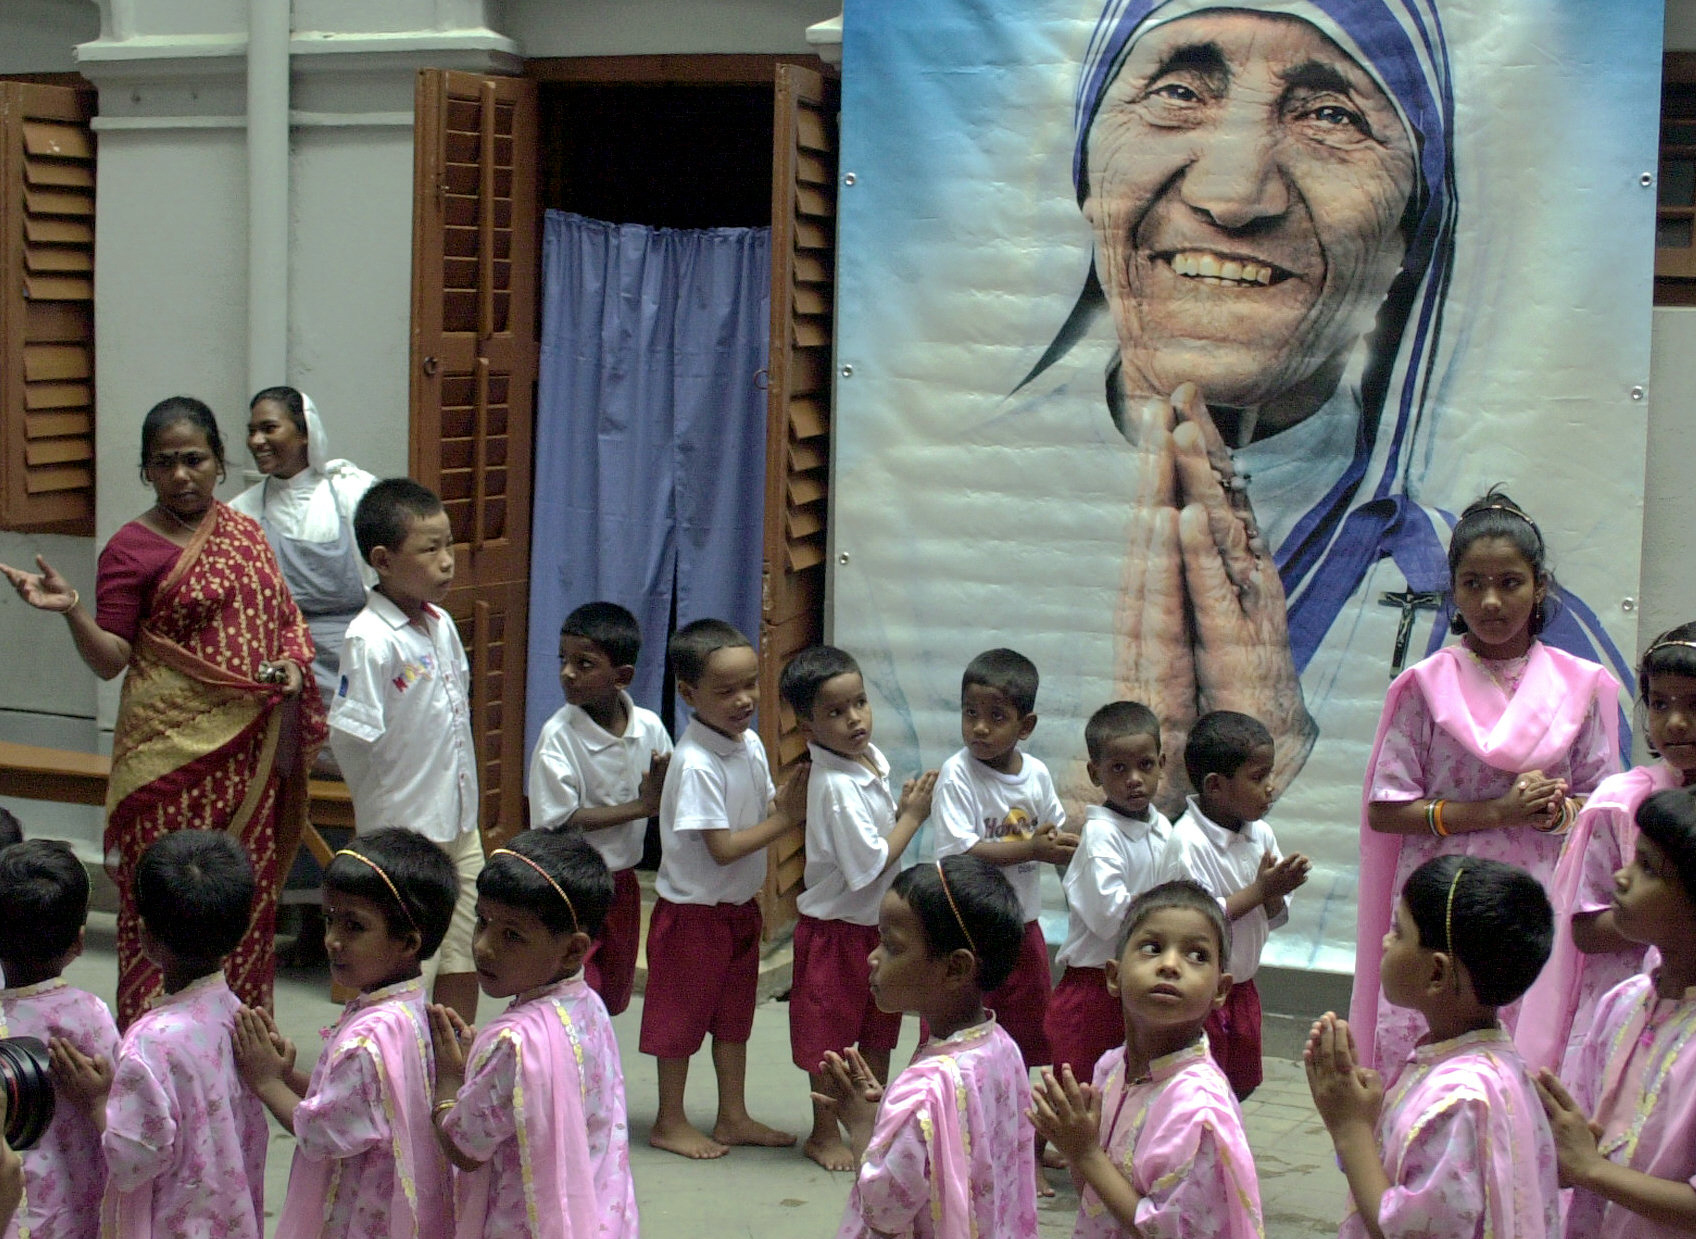 A group of Indian orphans along with a nun of the Missionaries of Charity offer prayers in front of a portrait of Mother Teresa during prayers to observe the seventh anniversary of her death in Calcutta, Sept. 5, 2004.